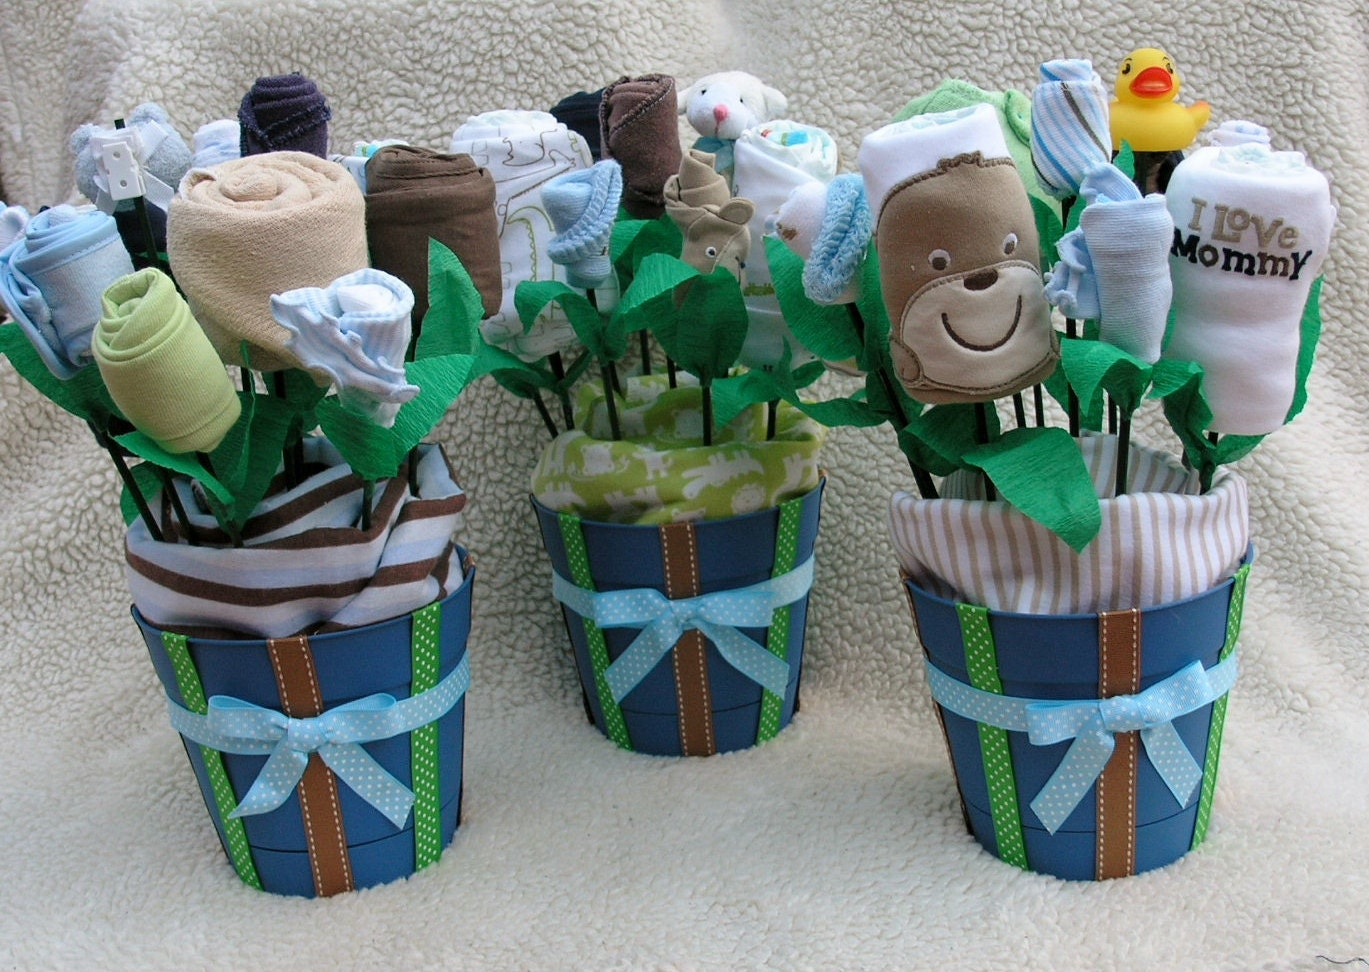 Duck baby shower on pinterest rubber duck baby boy for Baby decoration ideas